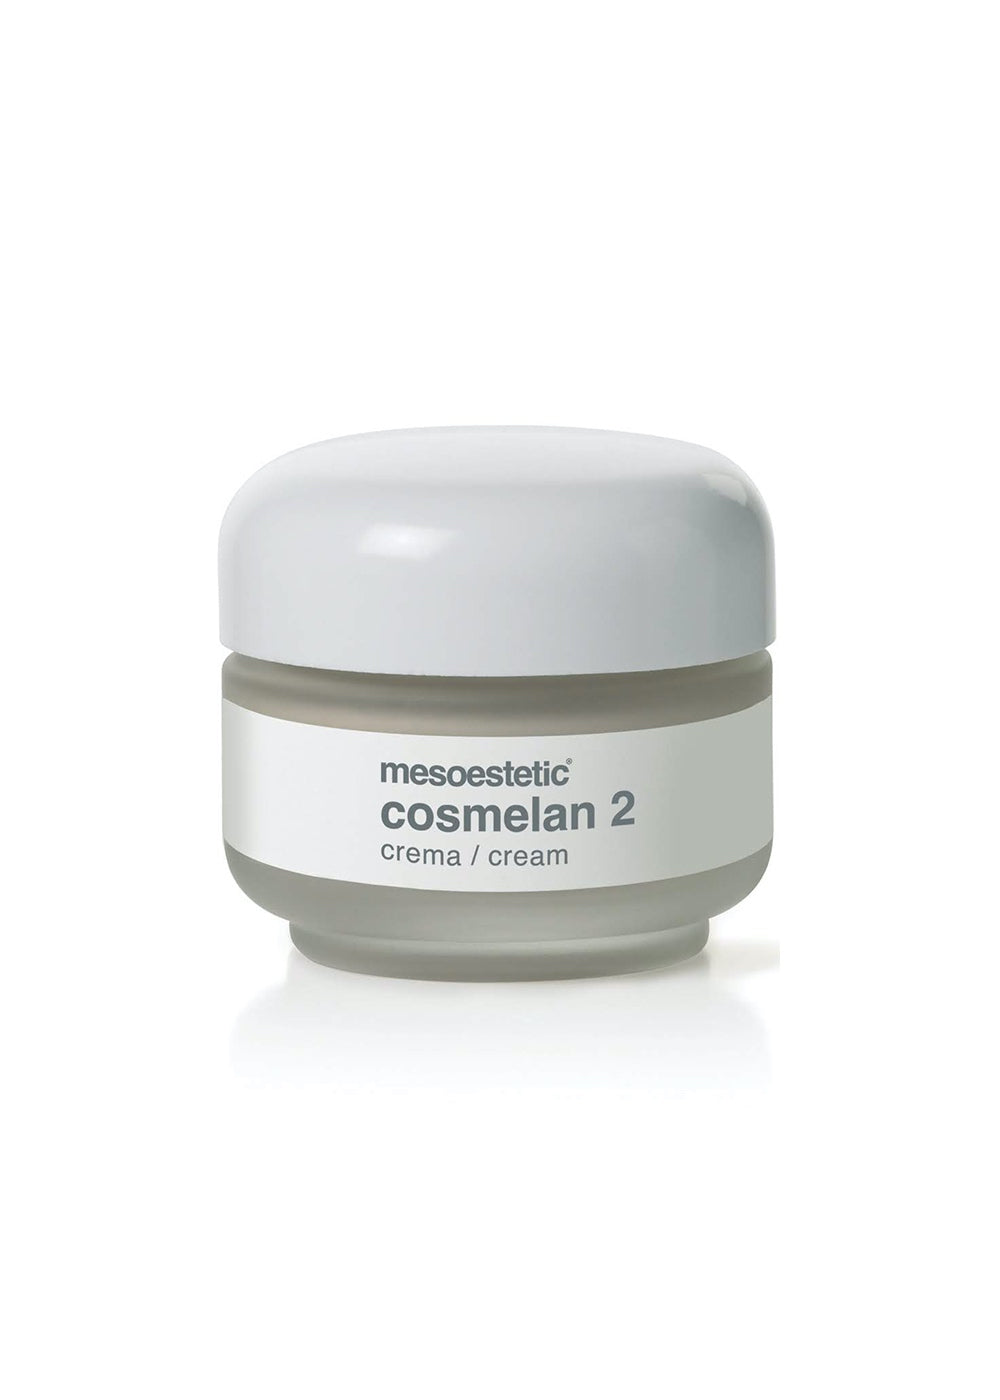 Mesoestetic Cosmelan 2 Maintenance Cream